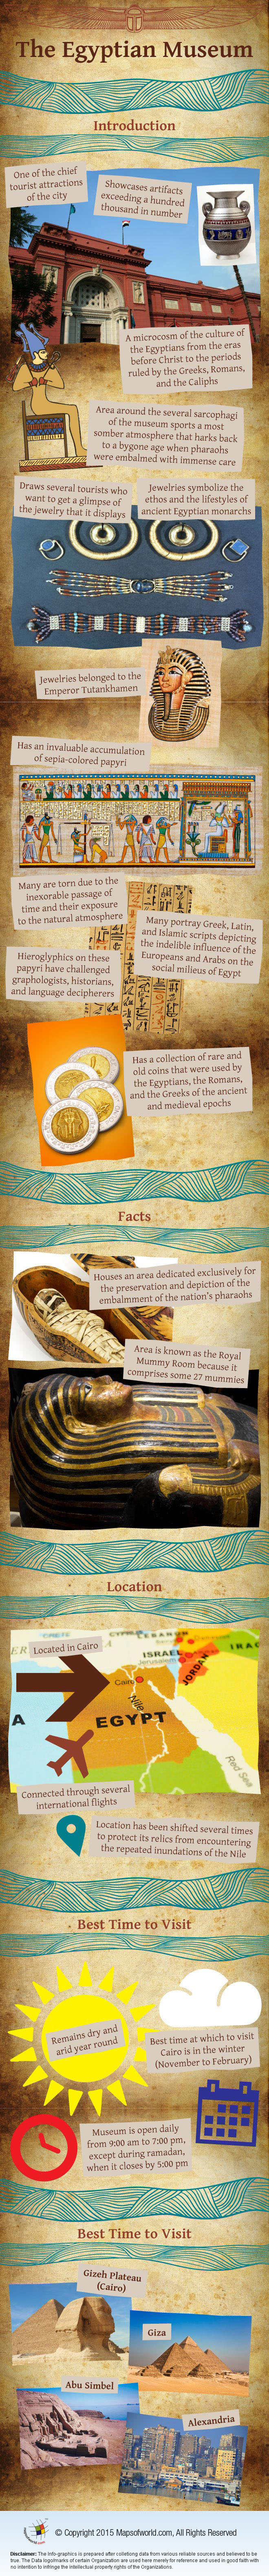 The Egyptian Museum infographic